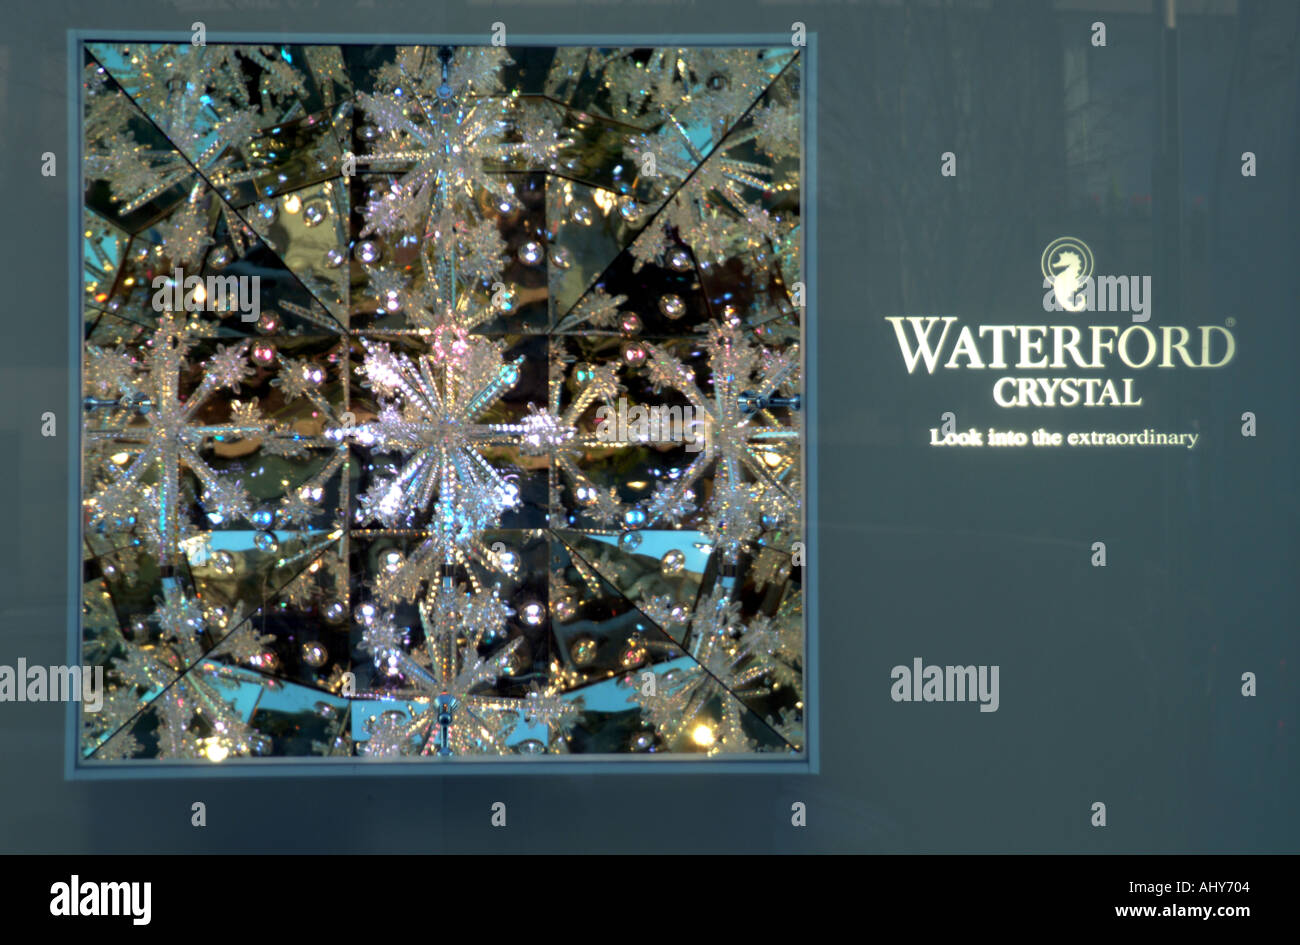 Waterford Crystal logo display on O Connell Street Dublin city centre Ireland EU - Stock Image